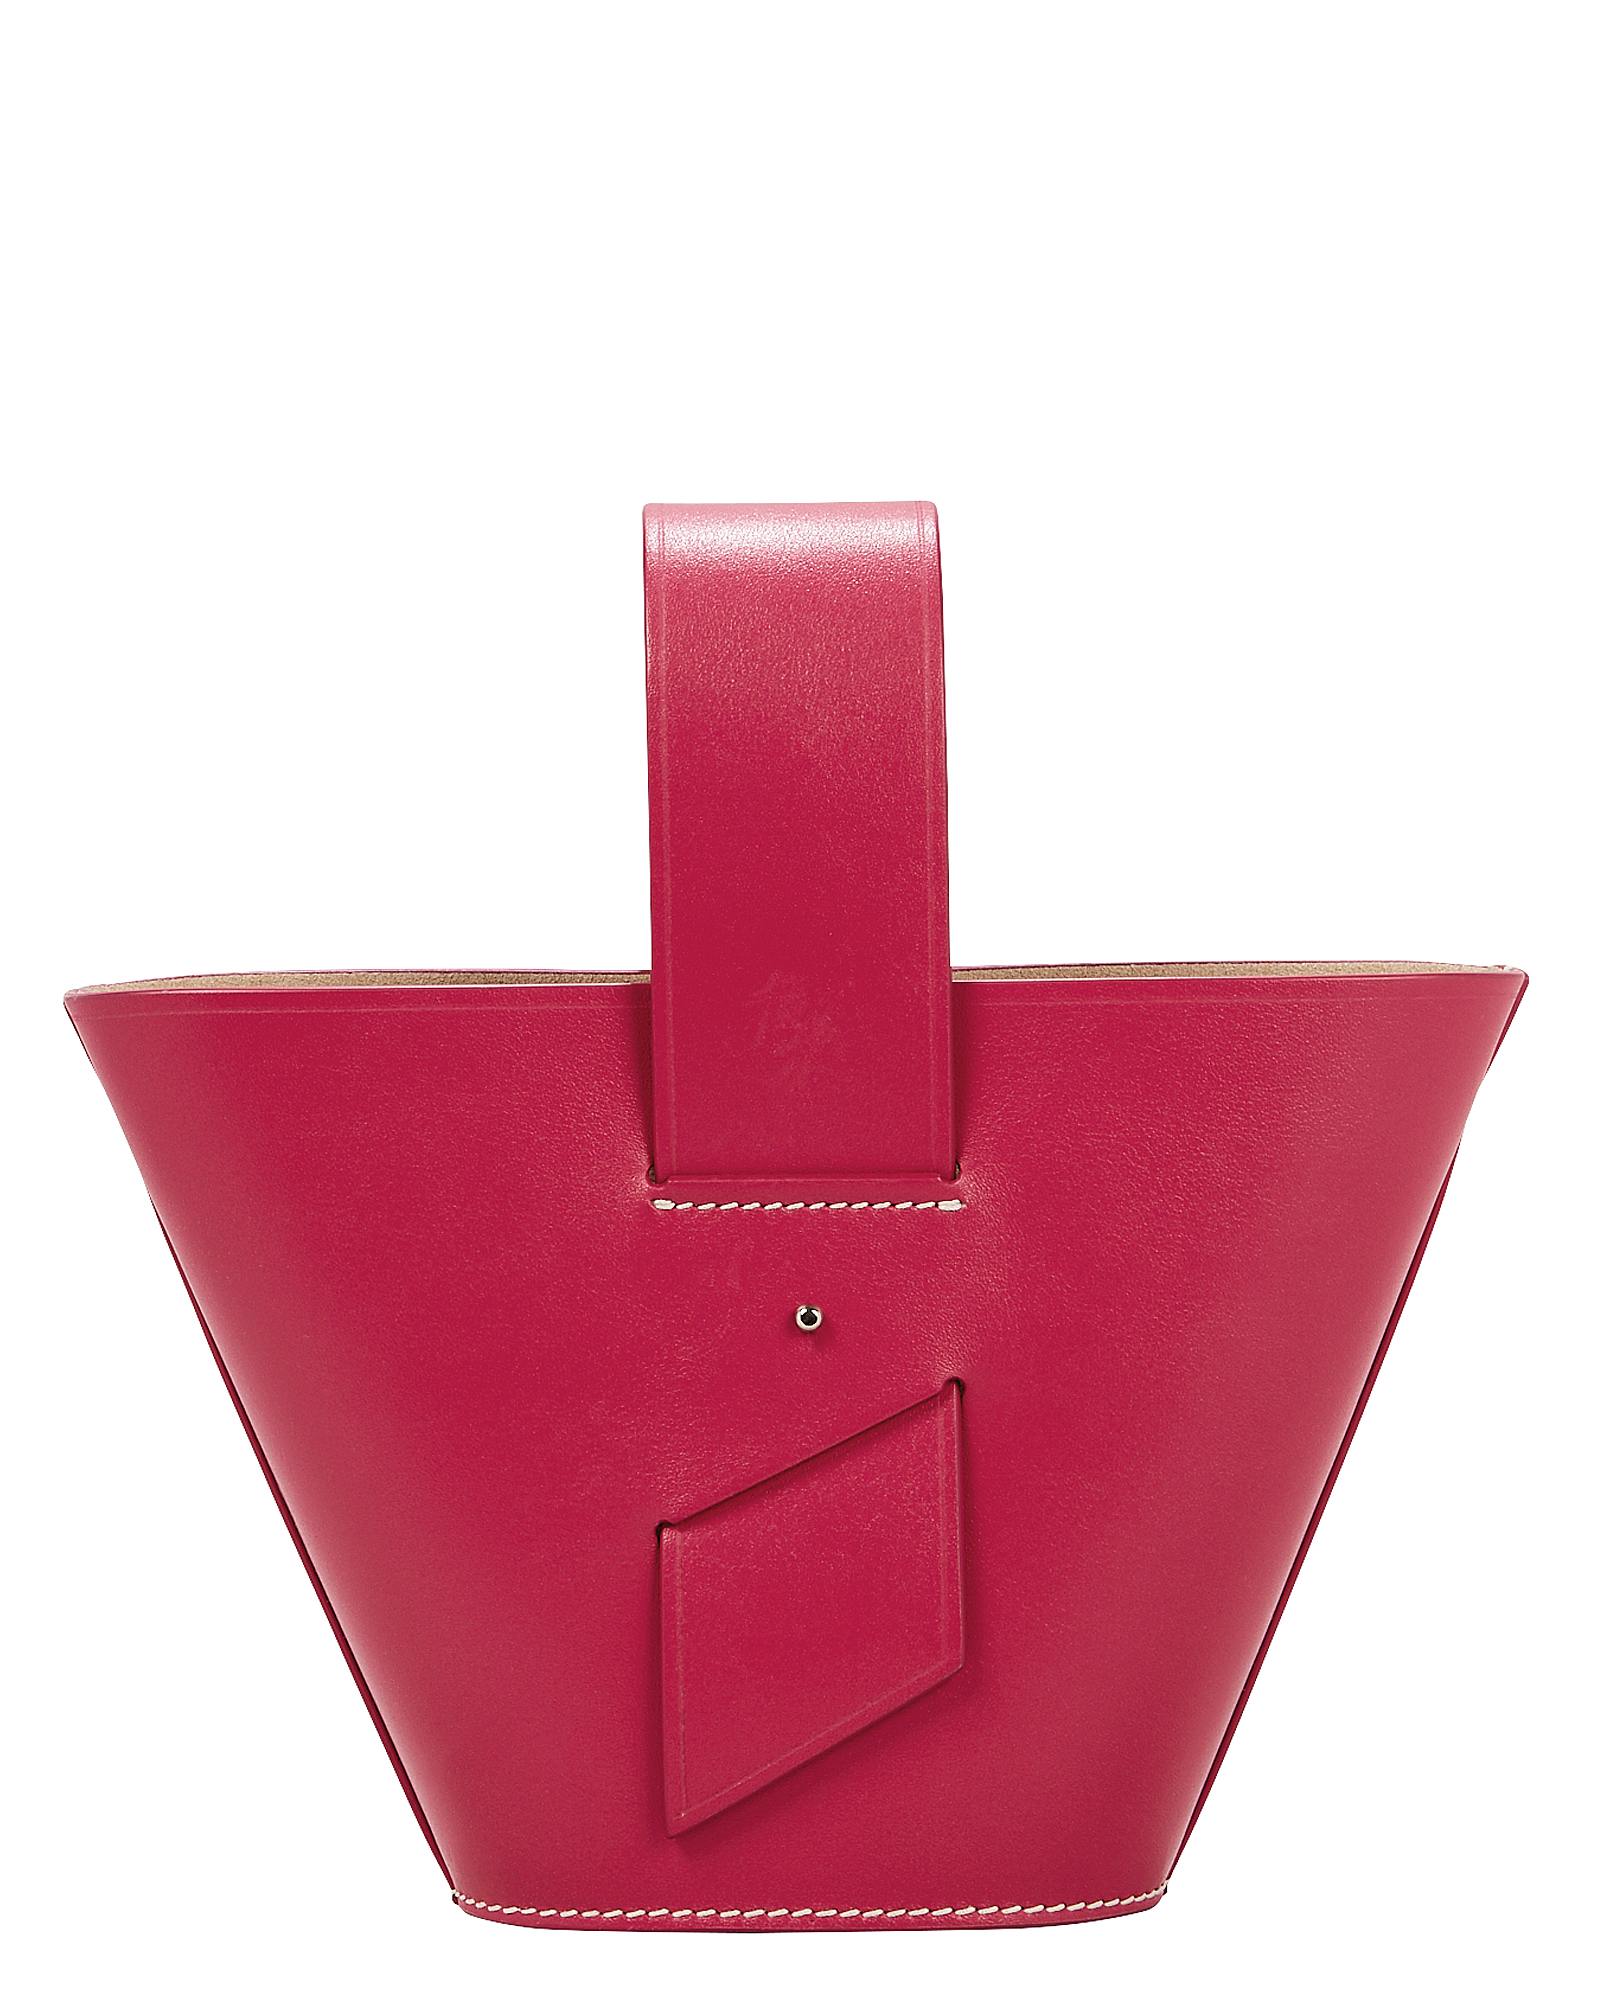 Amphora Mini Pink Crossbody Bag by Carolina Santo Domingo